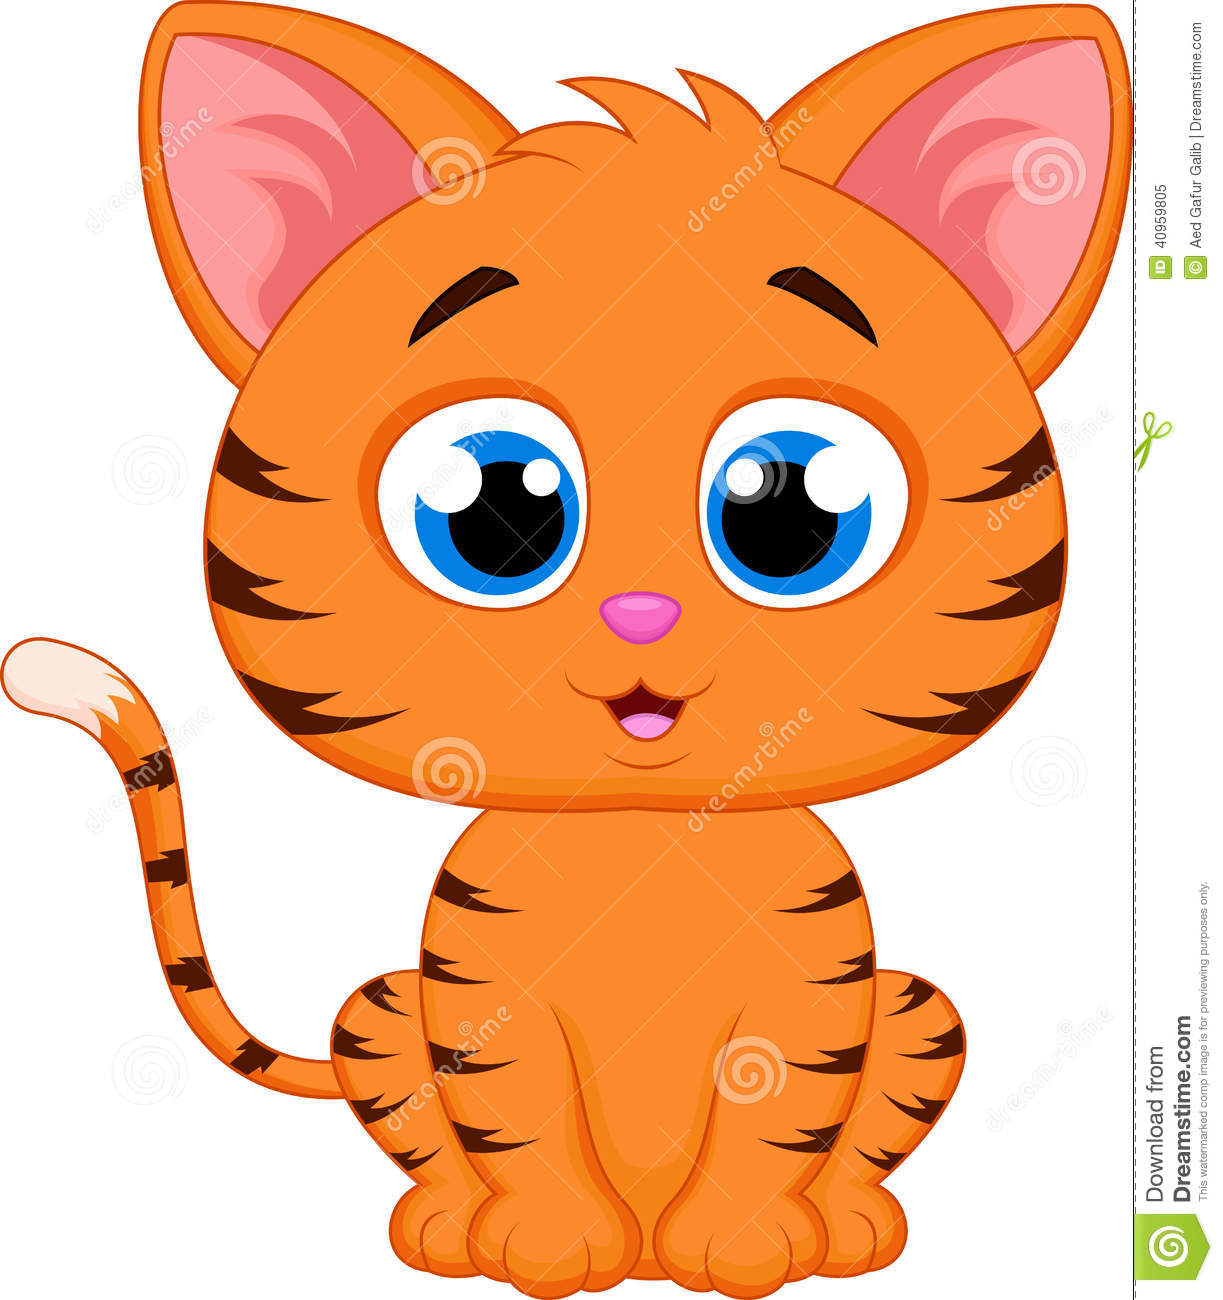 Cartoon Characters Cute : Cute cat cartoon stock vector image